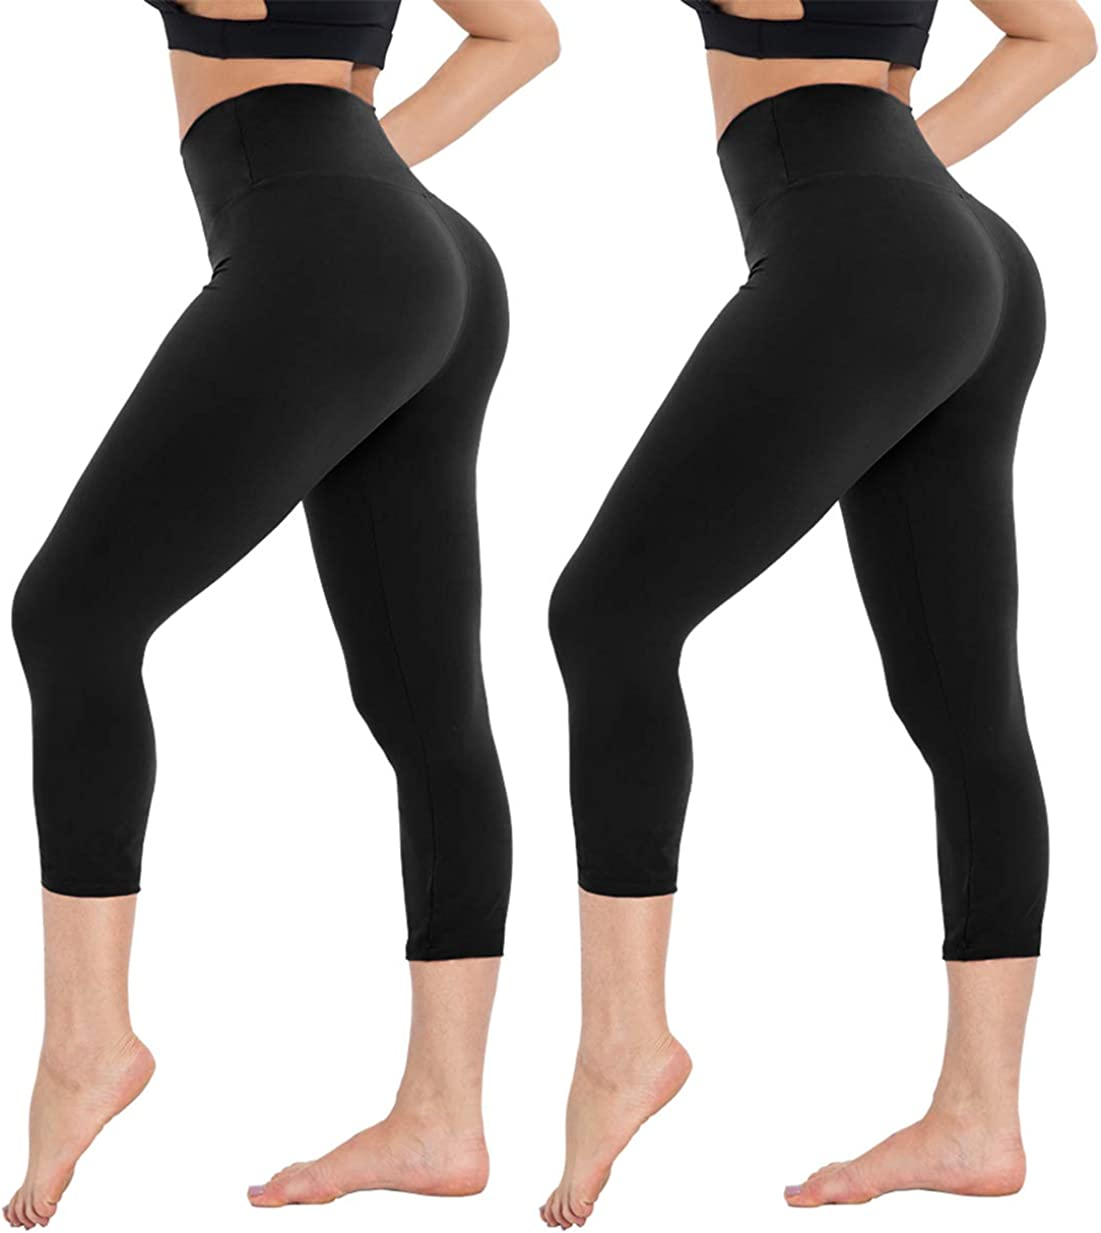 CAMPSNAIL High Waisted Leggings safety for Women C Tummy Colorado Springs Mall Buttery Soft -